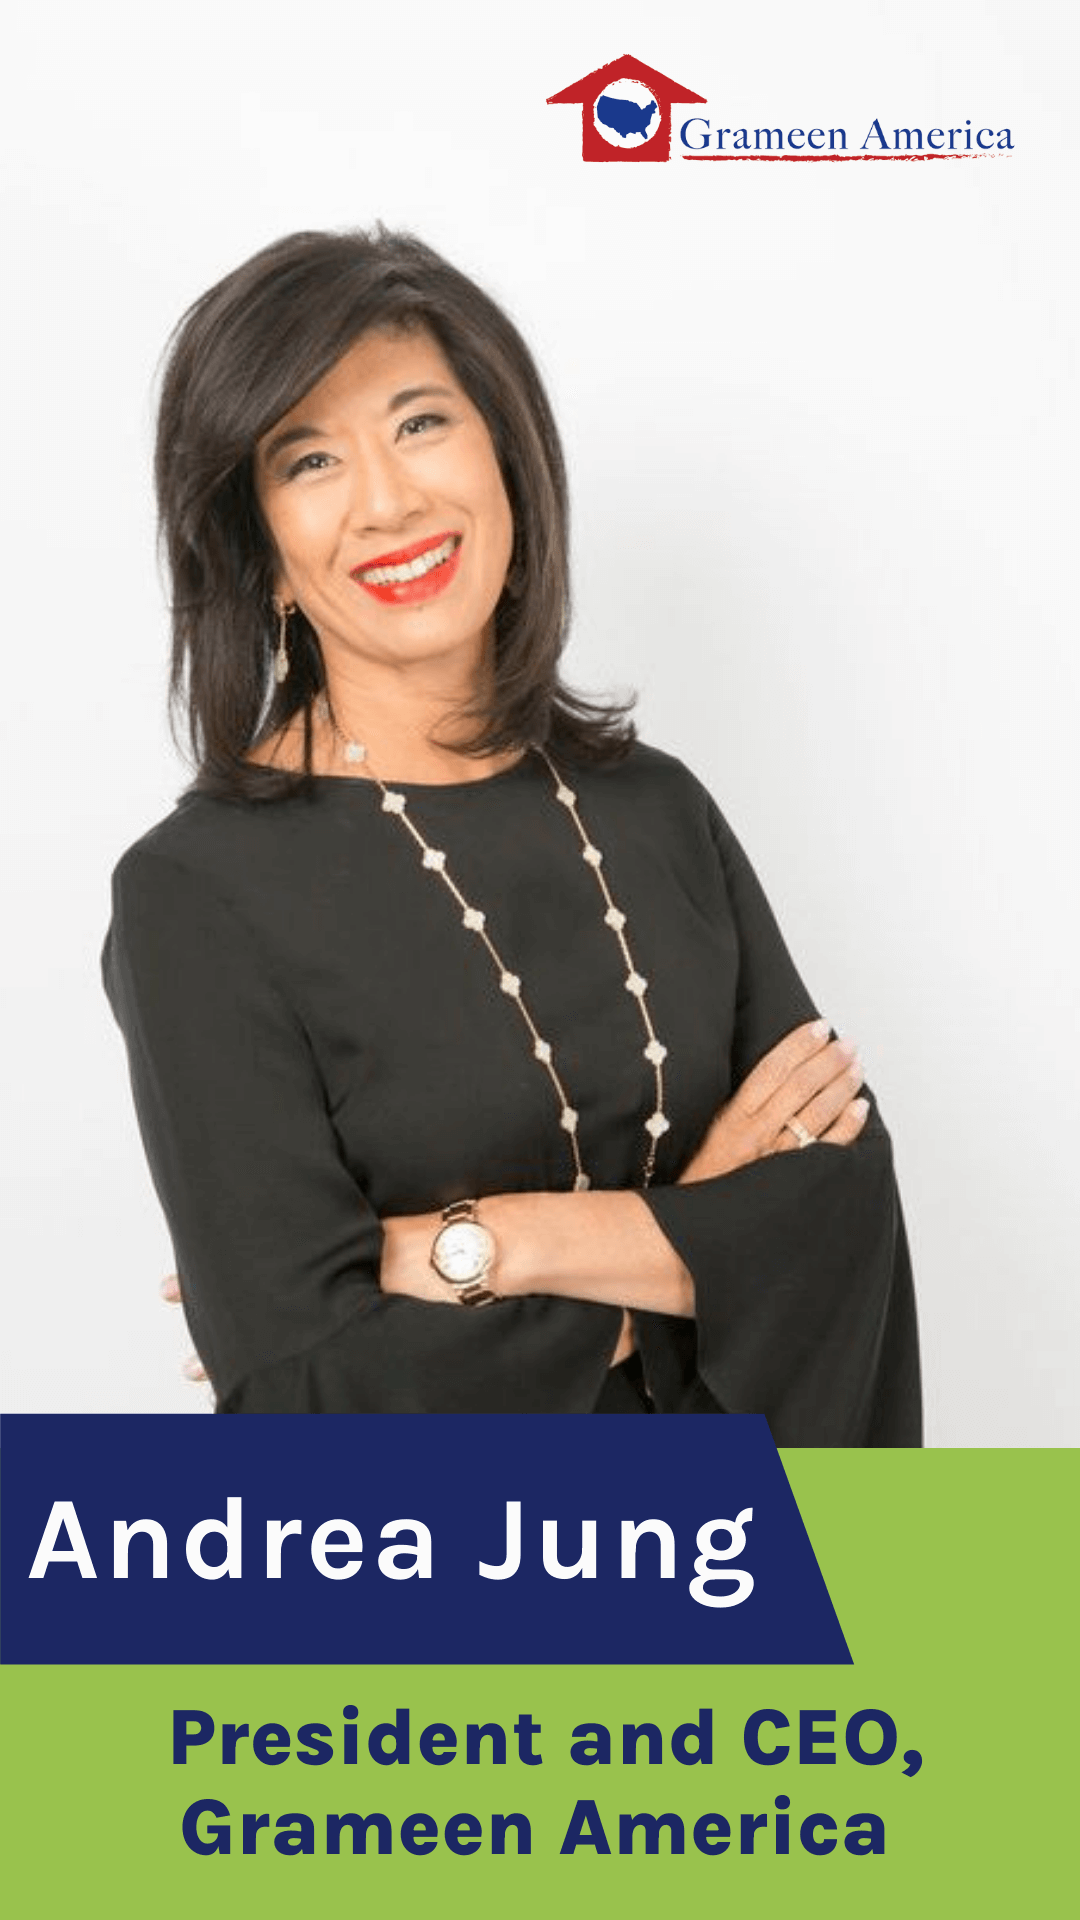 Andrea Jung, President and Chief Executive Officer, Grameen America